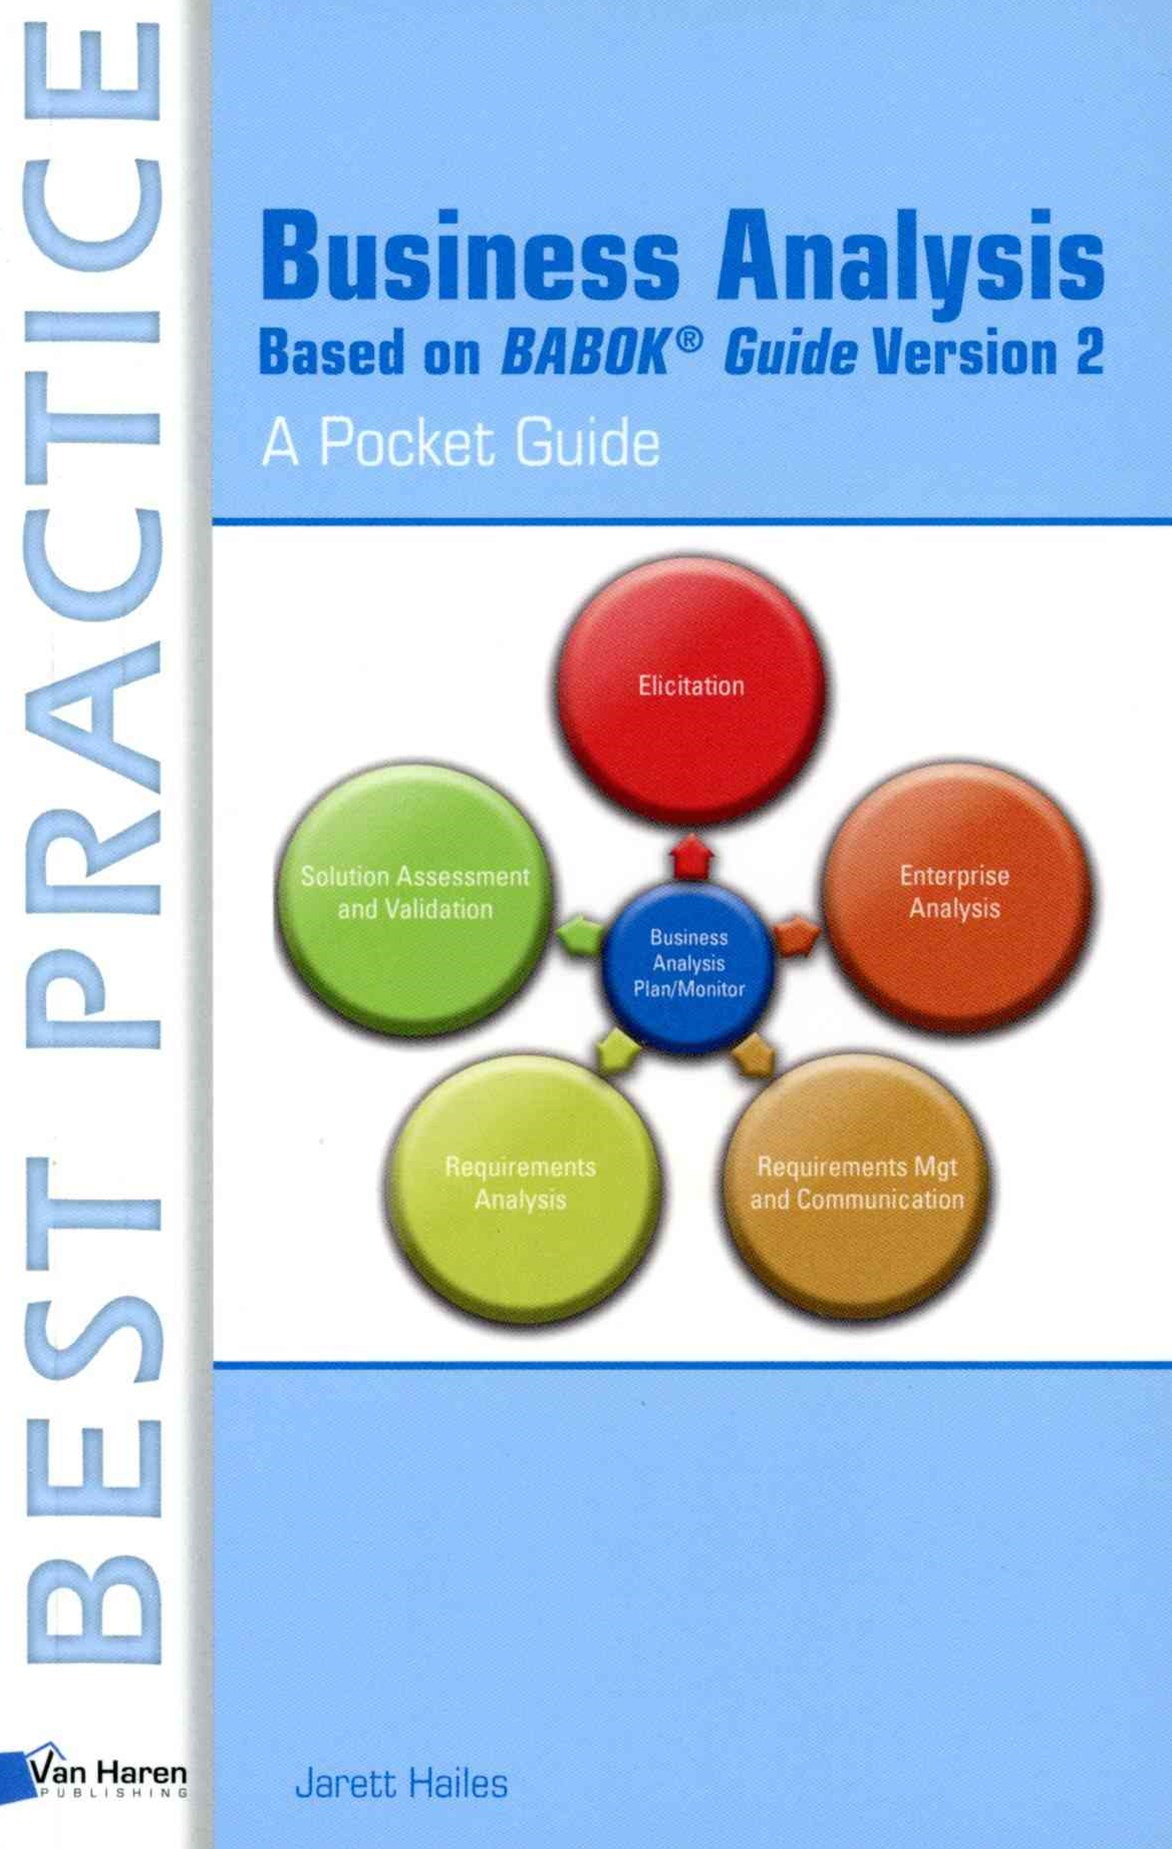 Business Analysis Based on Babok(r) Guide Version 2 - a Pocket Guide